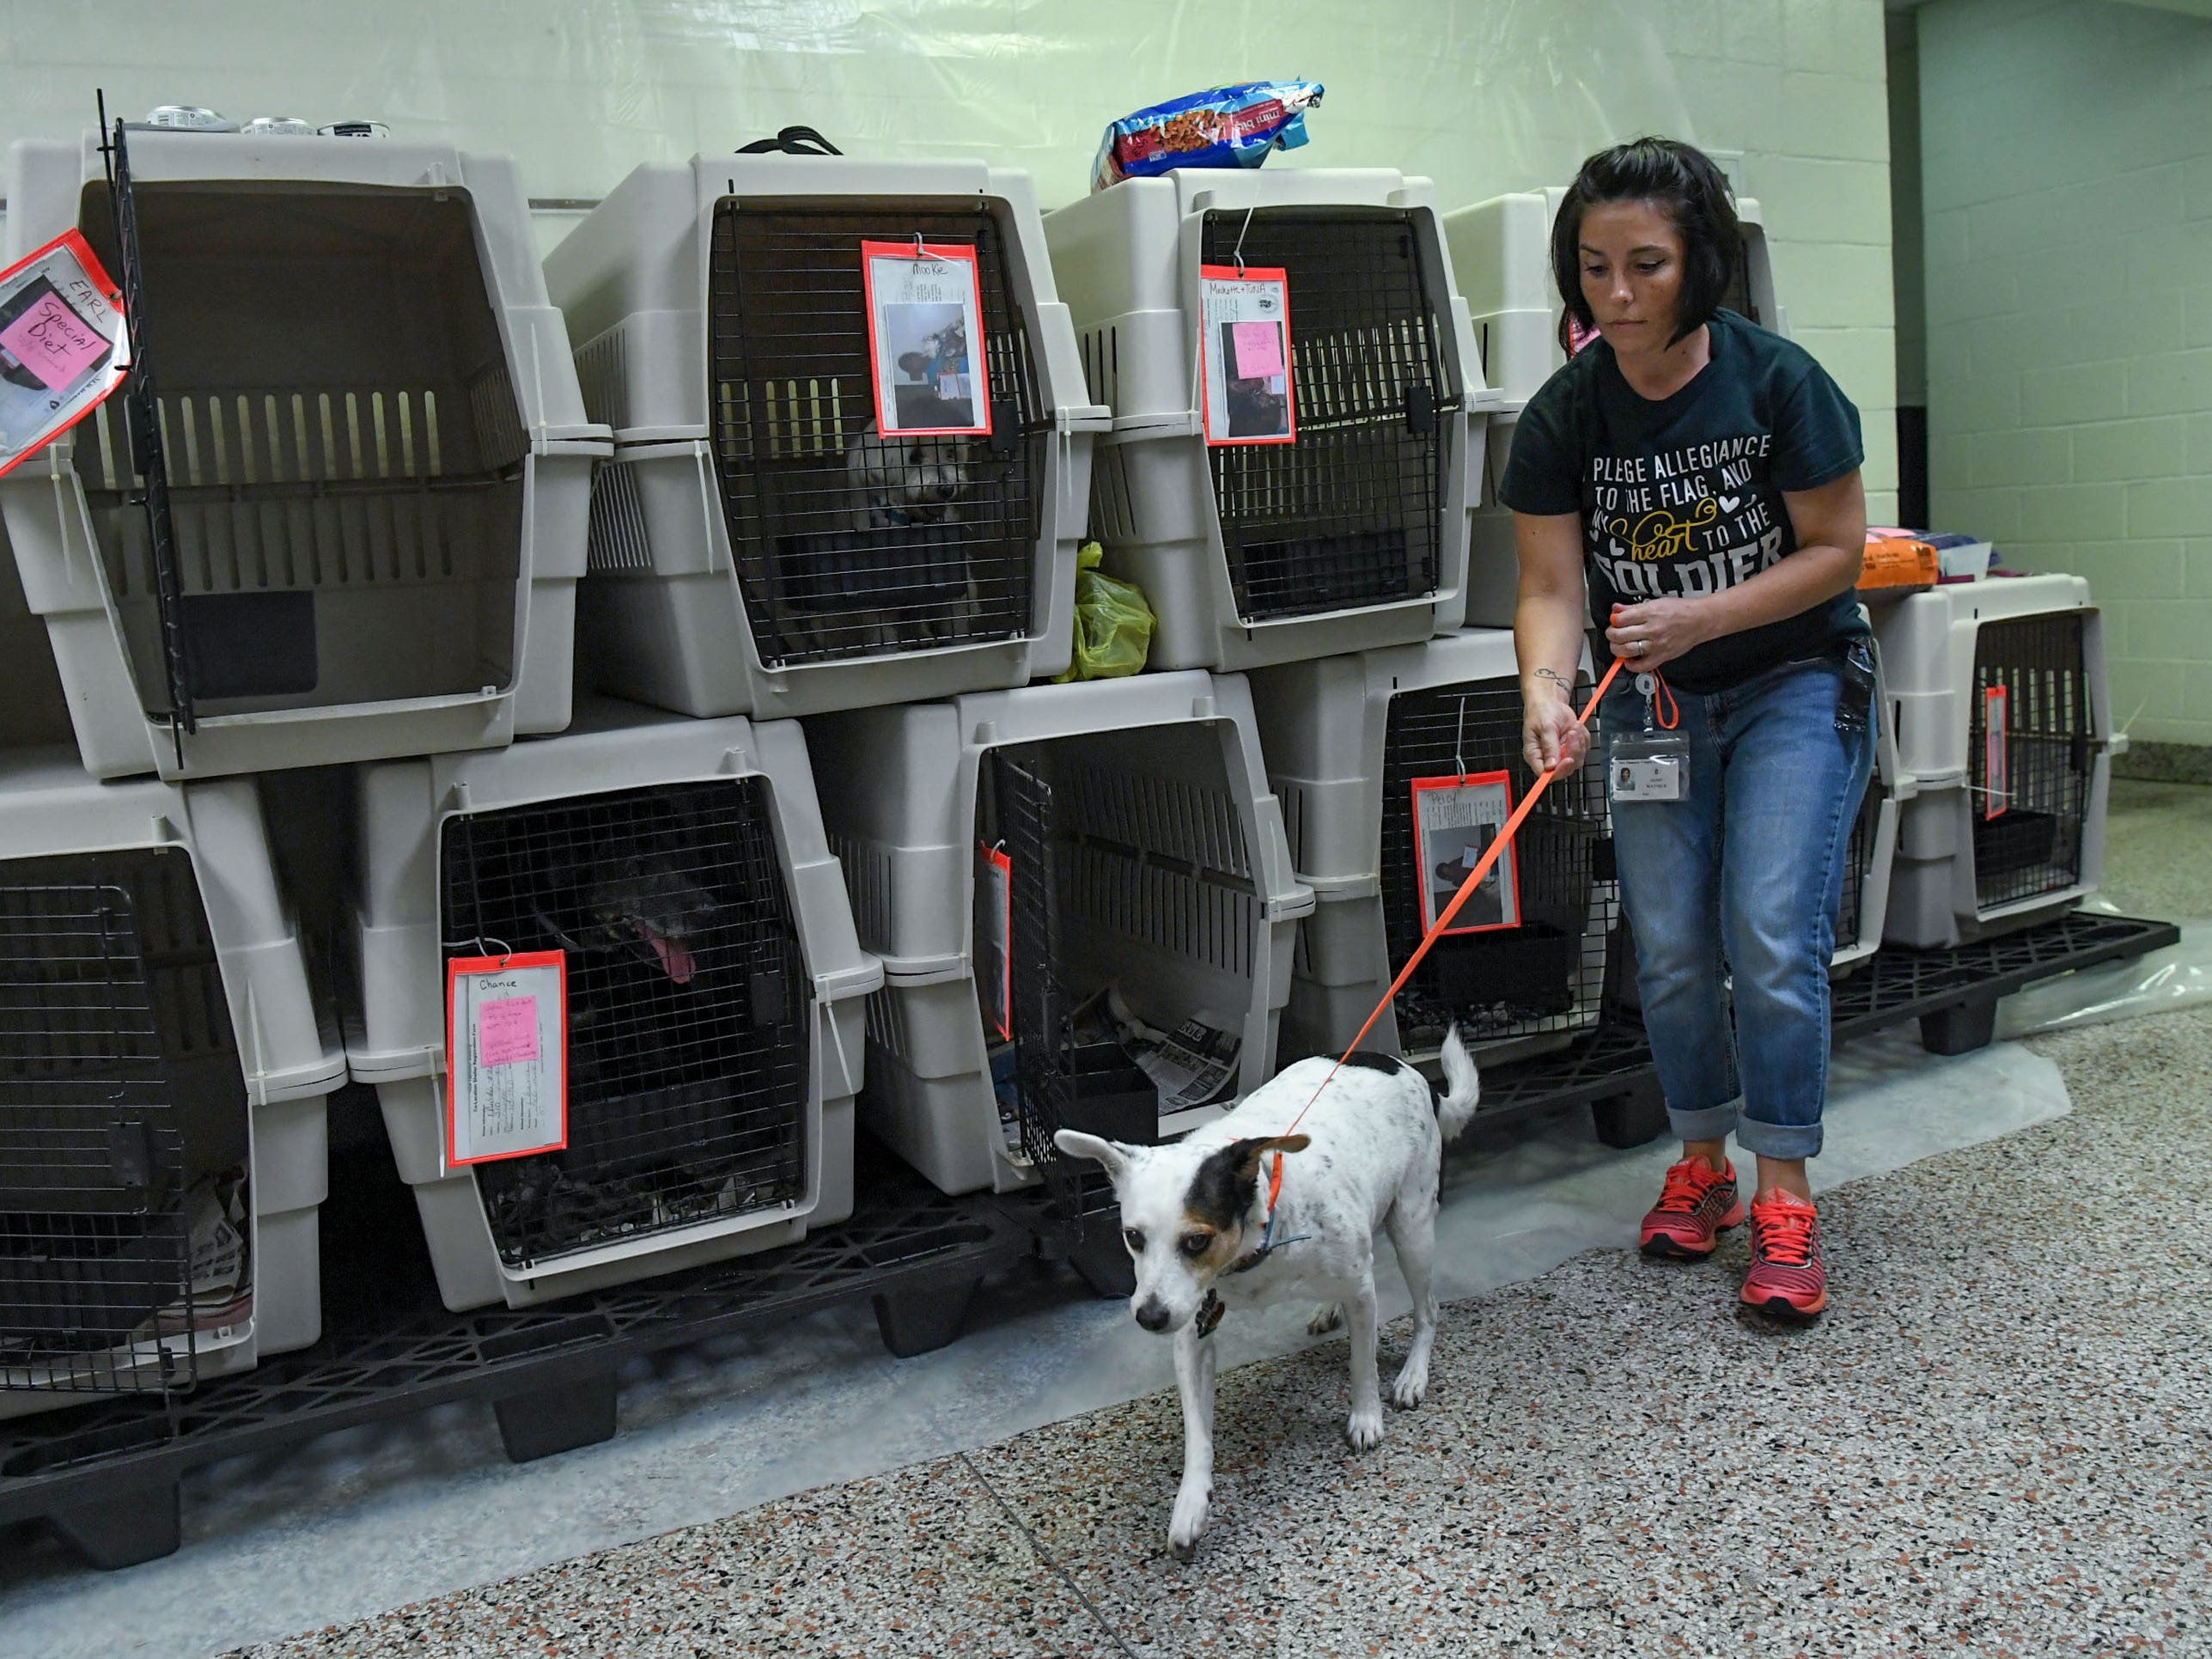 Jaime Waynick, an employee with New Hanover County, takes a dog for a walk at the county emergency shelter held at Trask Middle School in Wilmington, N.C.  Sept. 11, 2018.